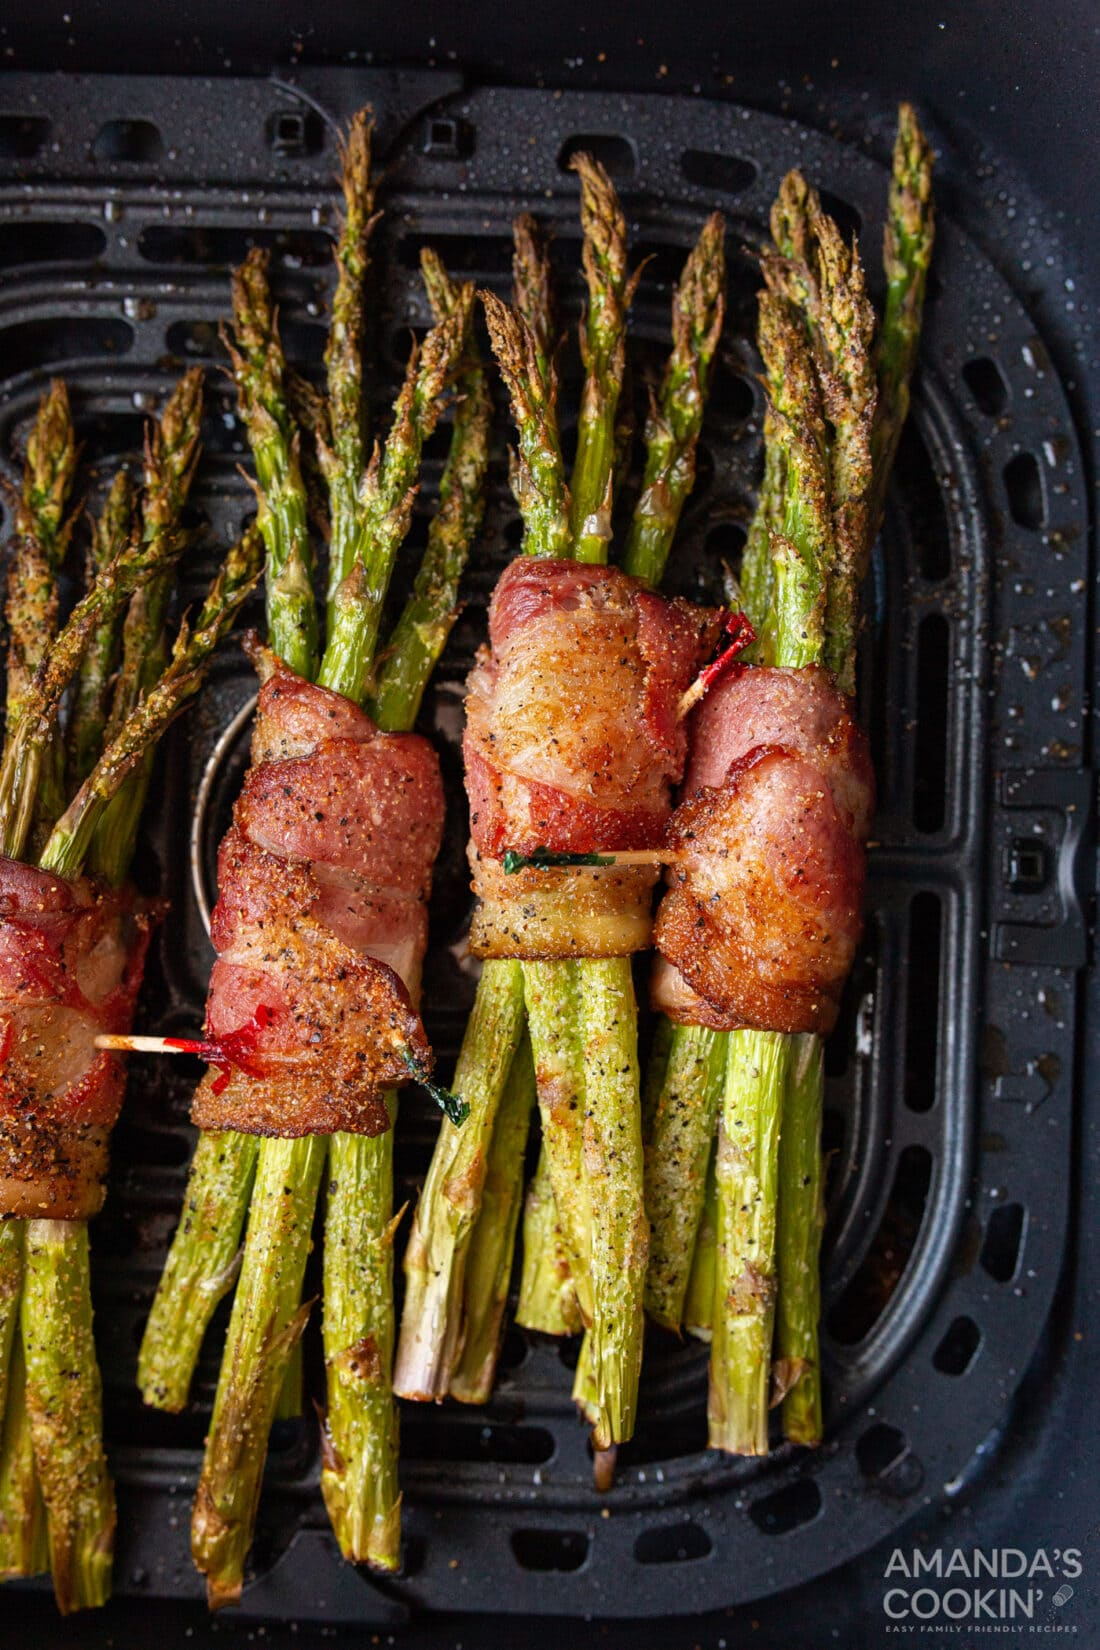 Bacon Wrapped Asparagus in an air fryer basket